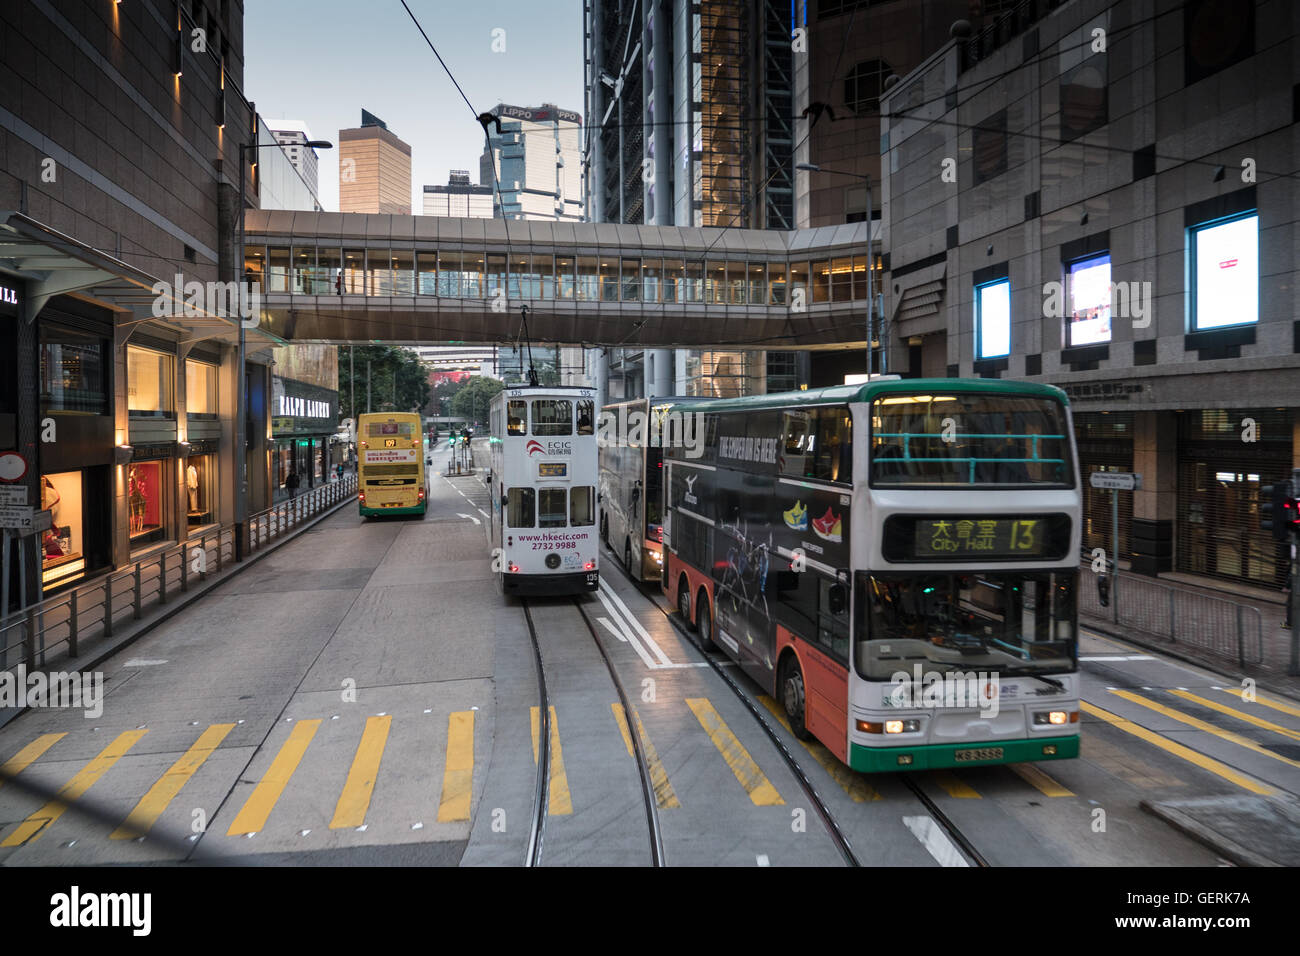 Trams and buses in Honk Kong, China. - Stock Image